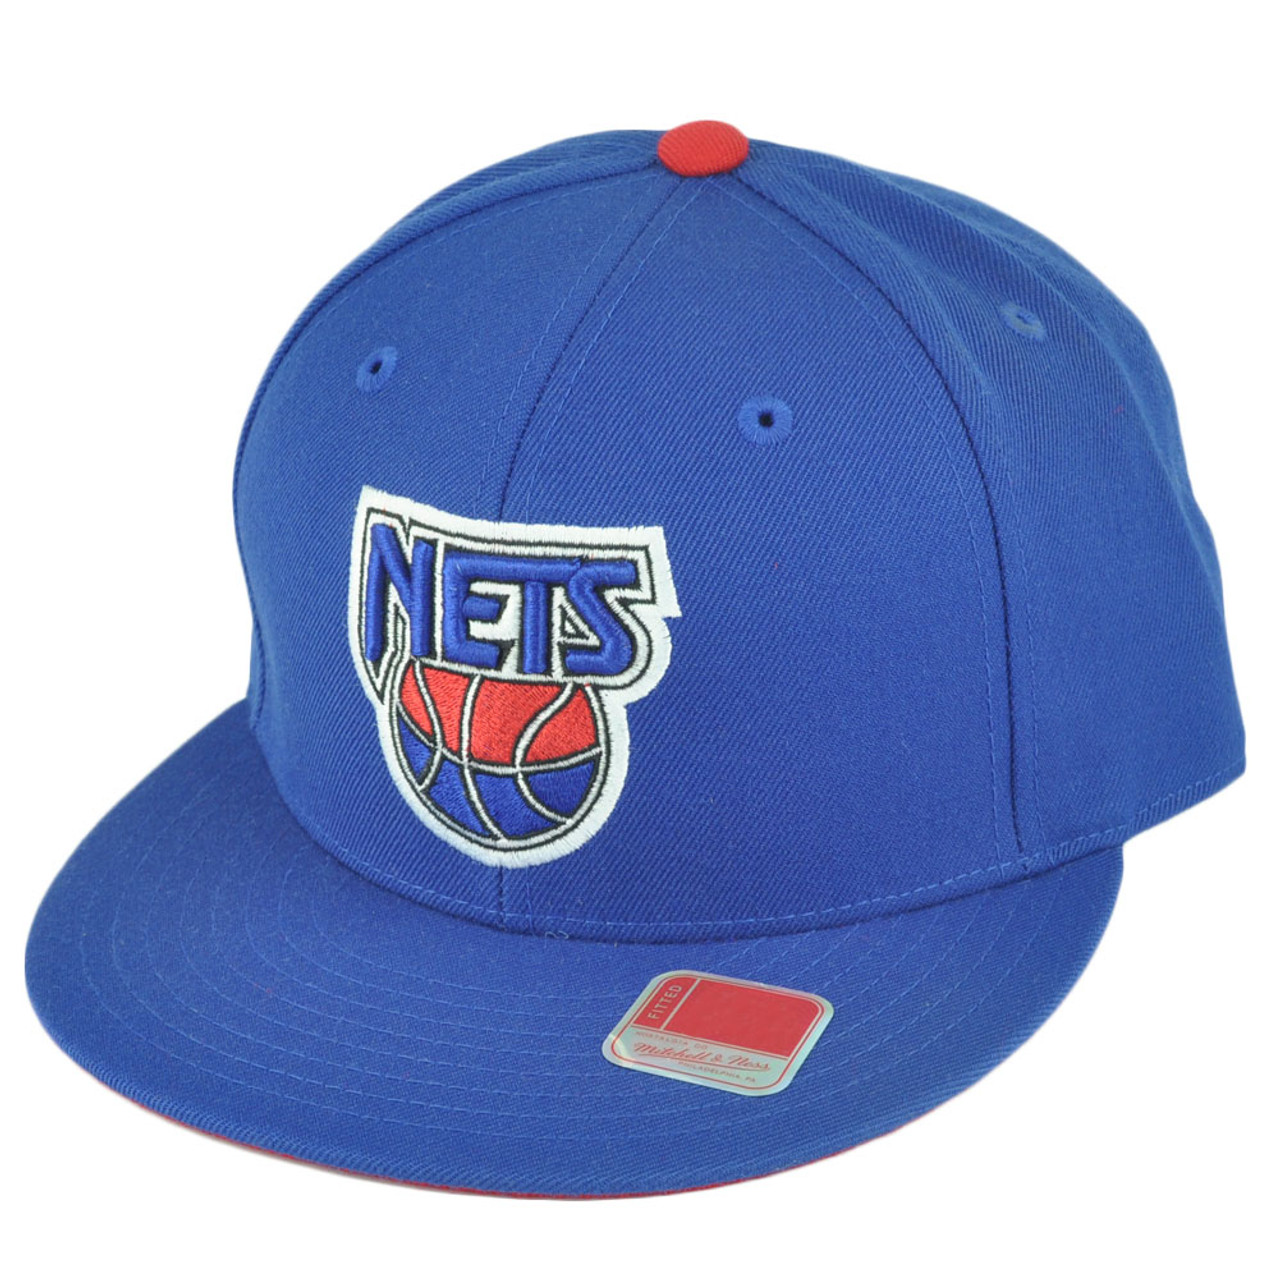 best service 3c929 f36e5 NBA Mitchell Ness TK40 New Jersey Nets Fitted Alternate Blue Hat Cap